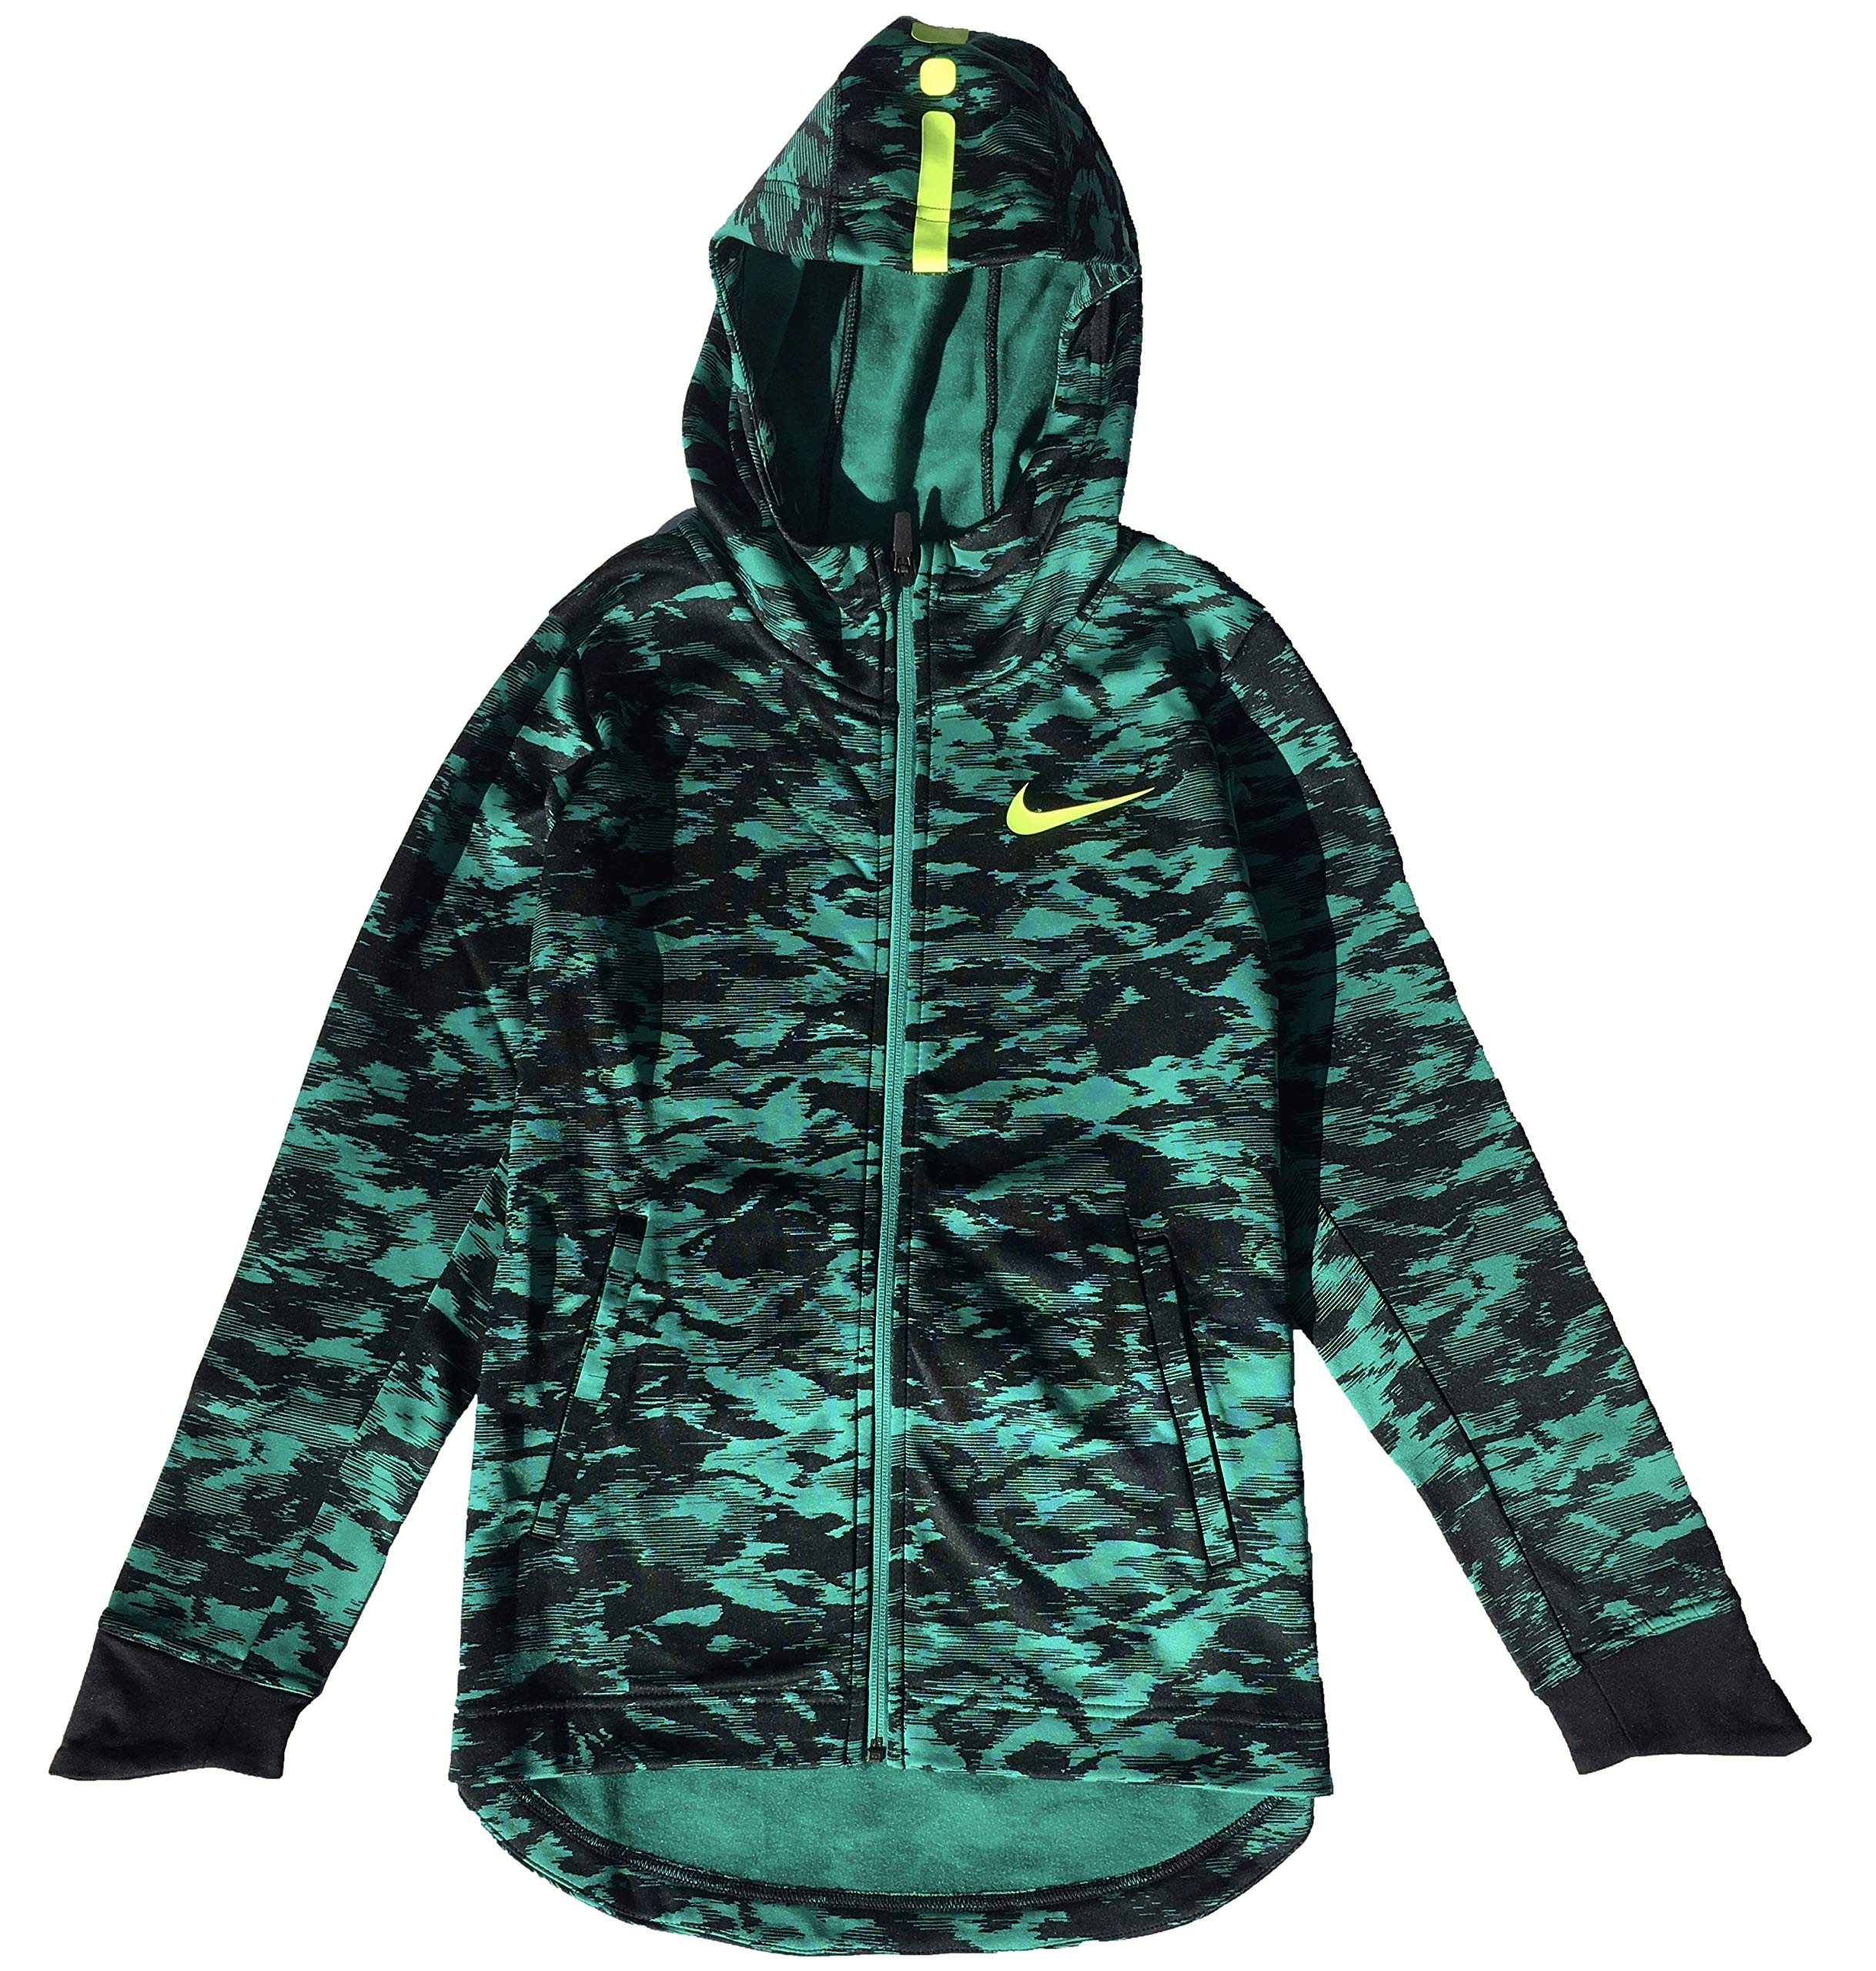 Nike Boy's Therma Elite Basketball Hoodie Neptune Green/Volt Size X-Large by Nike (Image #1)